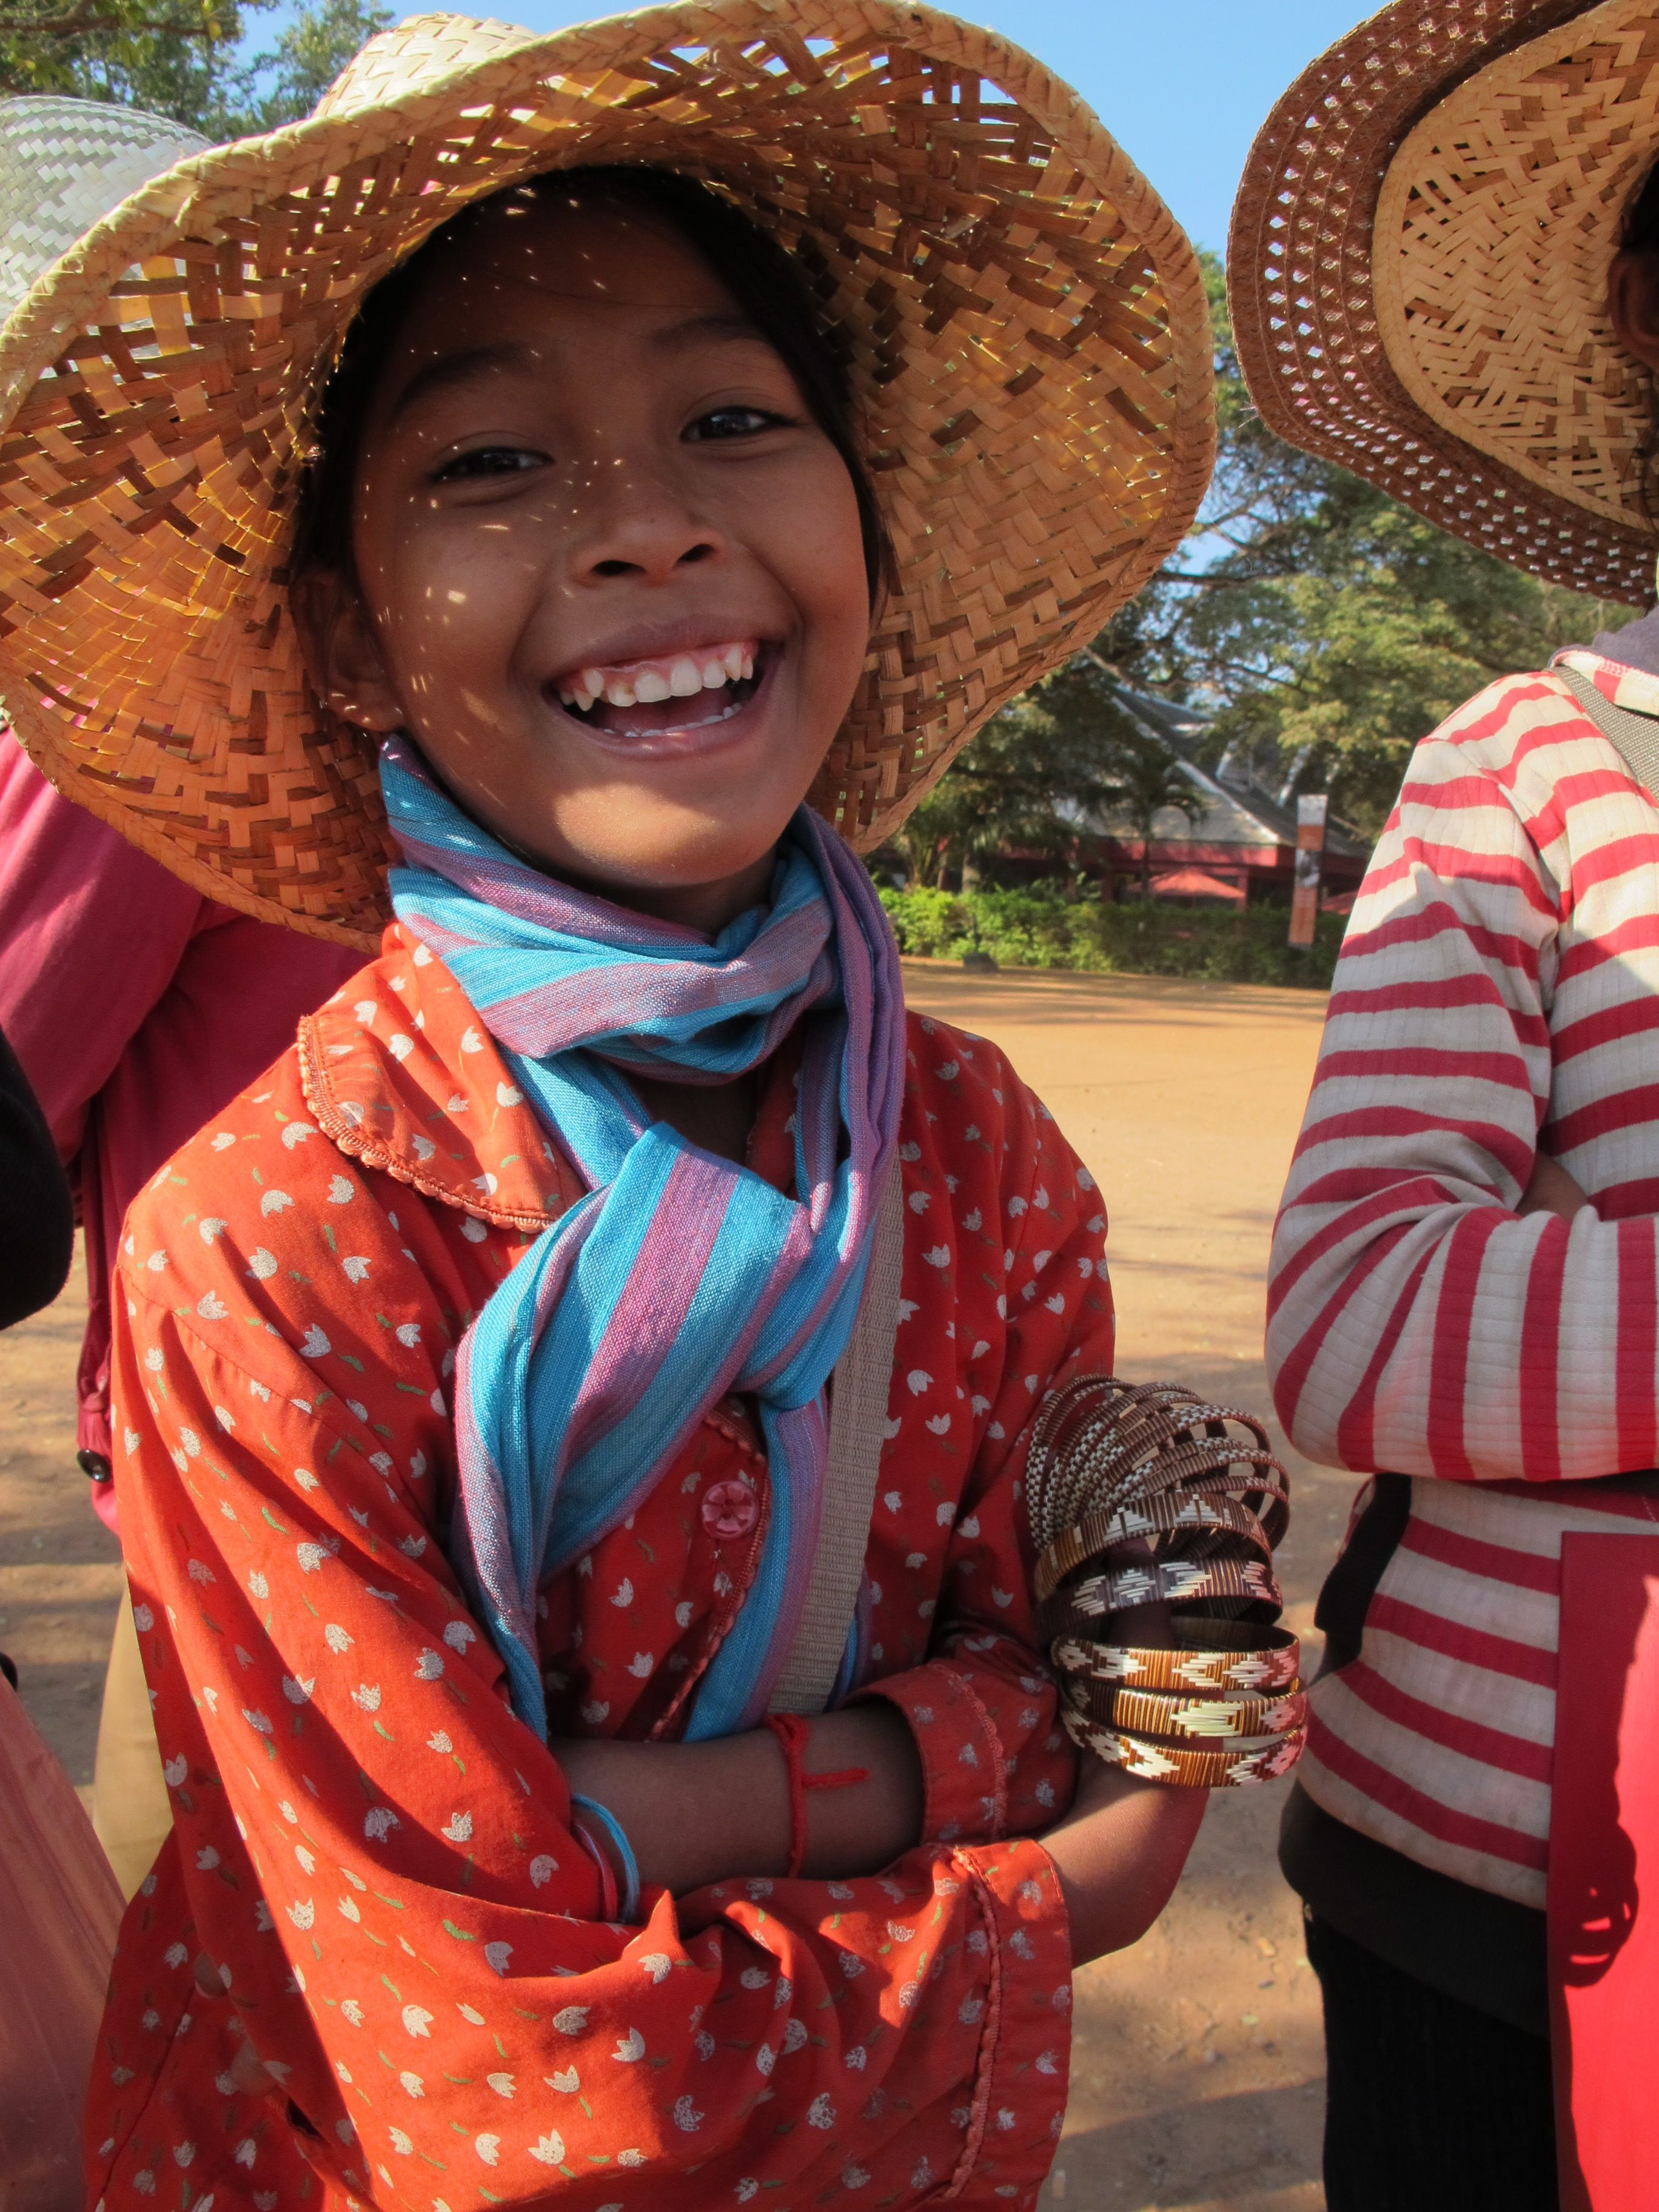 We bought these bracelets at Angkor Wat in Cambodia... how to resist a smile like that?  Pic by Anthea Paul